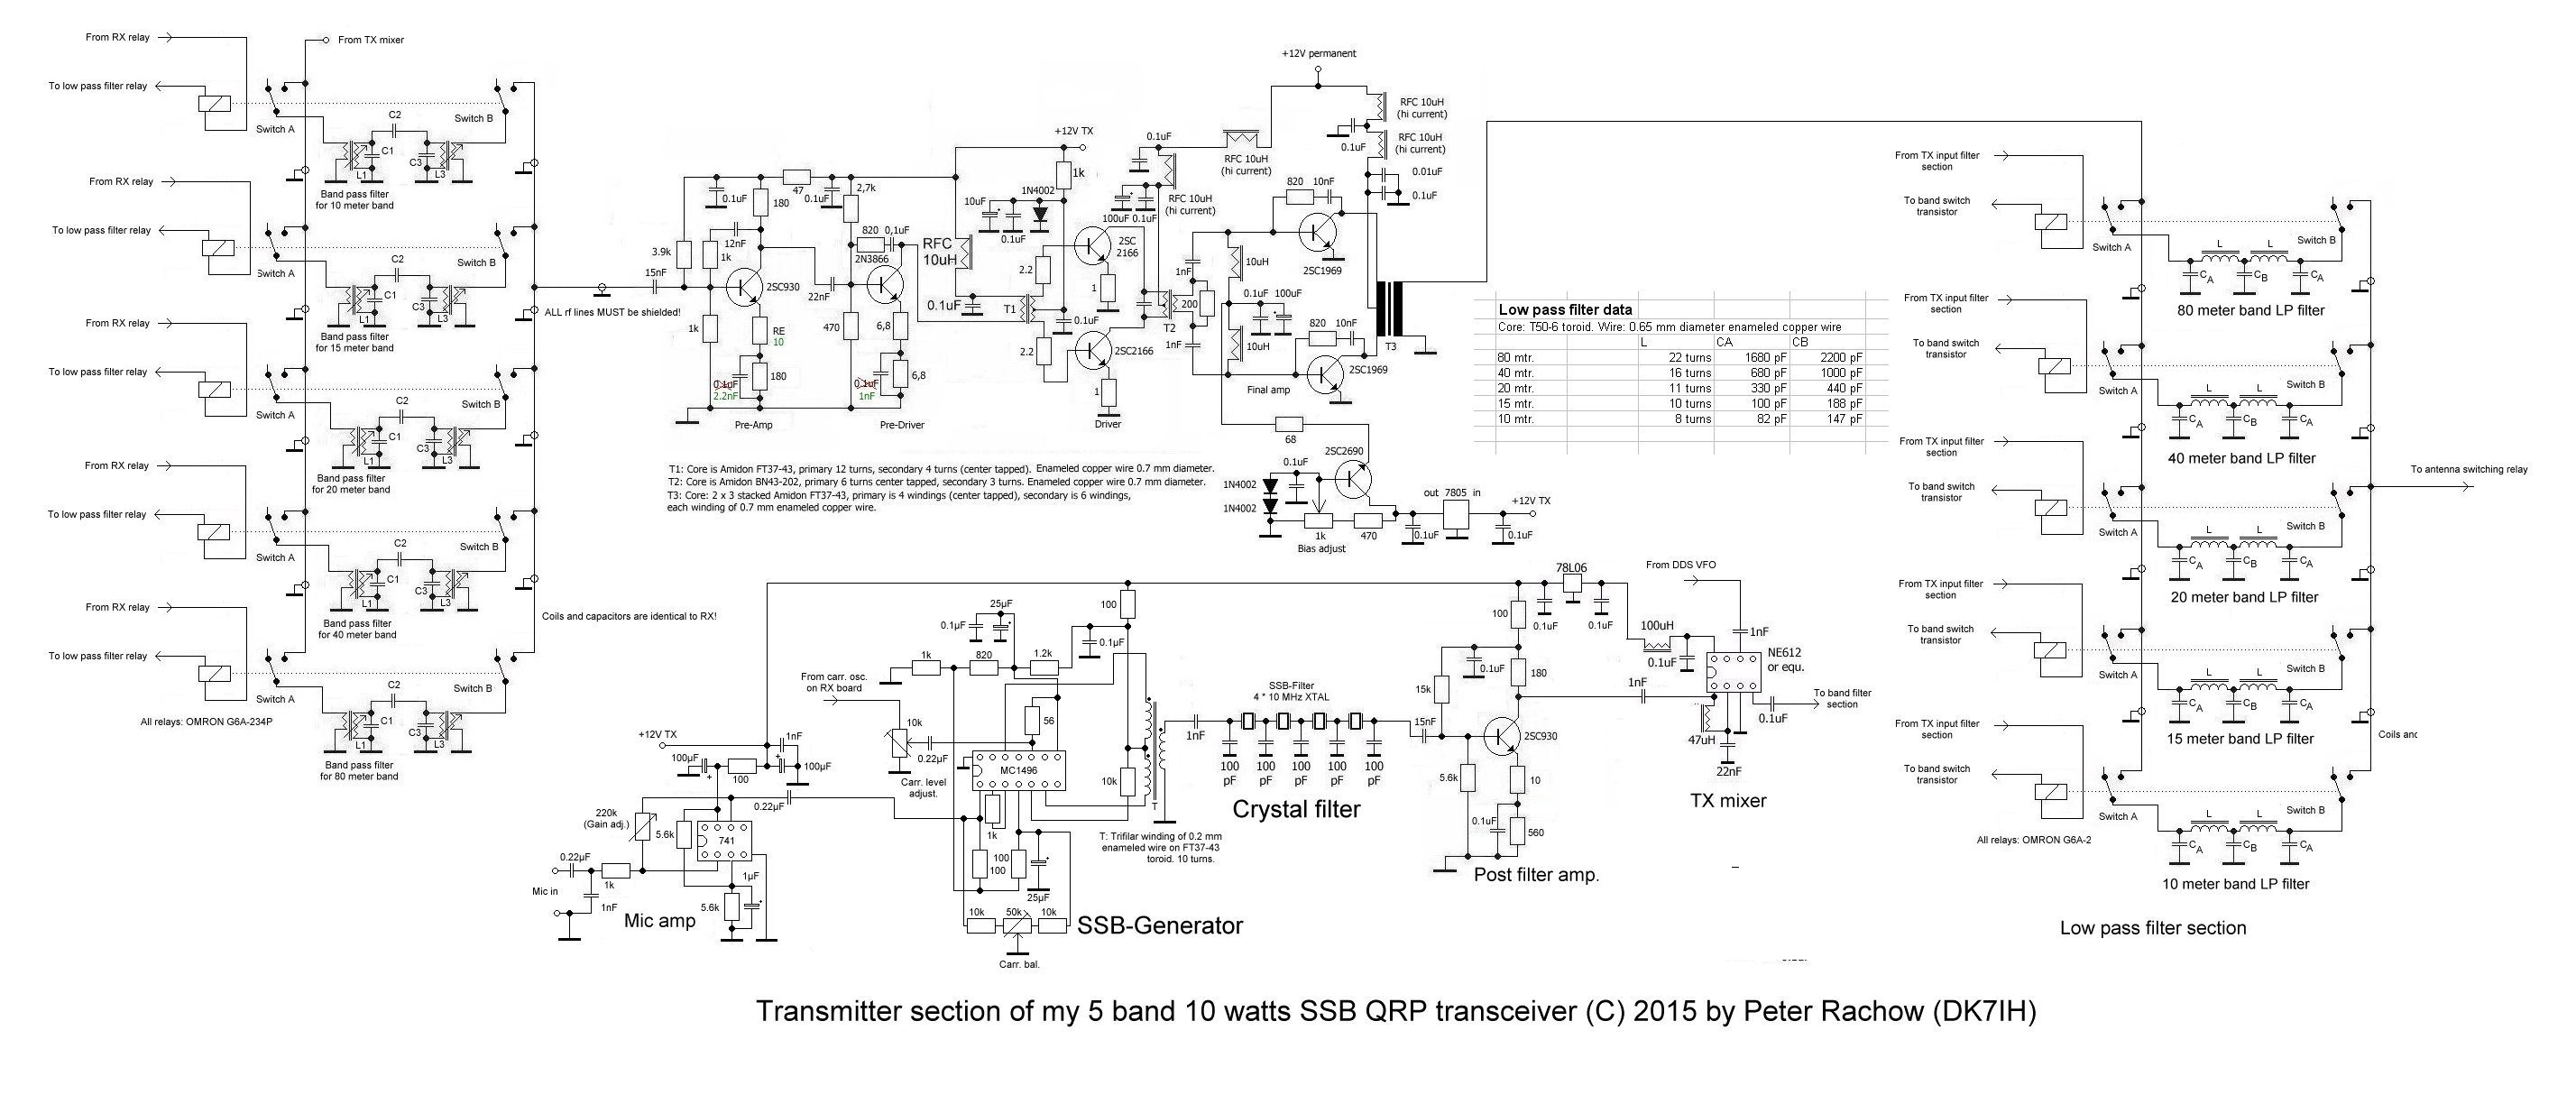 A 5 bands 10 Watts multi band SSQ QRP transceiver: The full transmitter section including broadband linear amplifier from 3 to 30 MHz (C) Peter Rachow (DK7IH) 2015